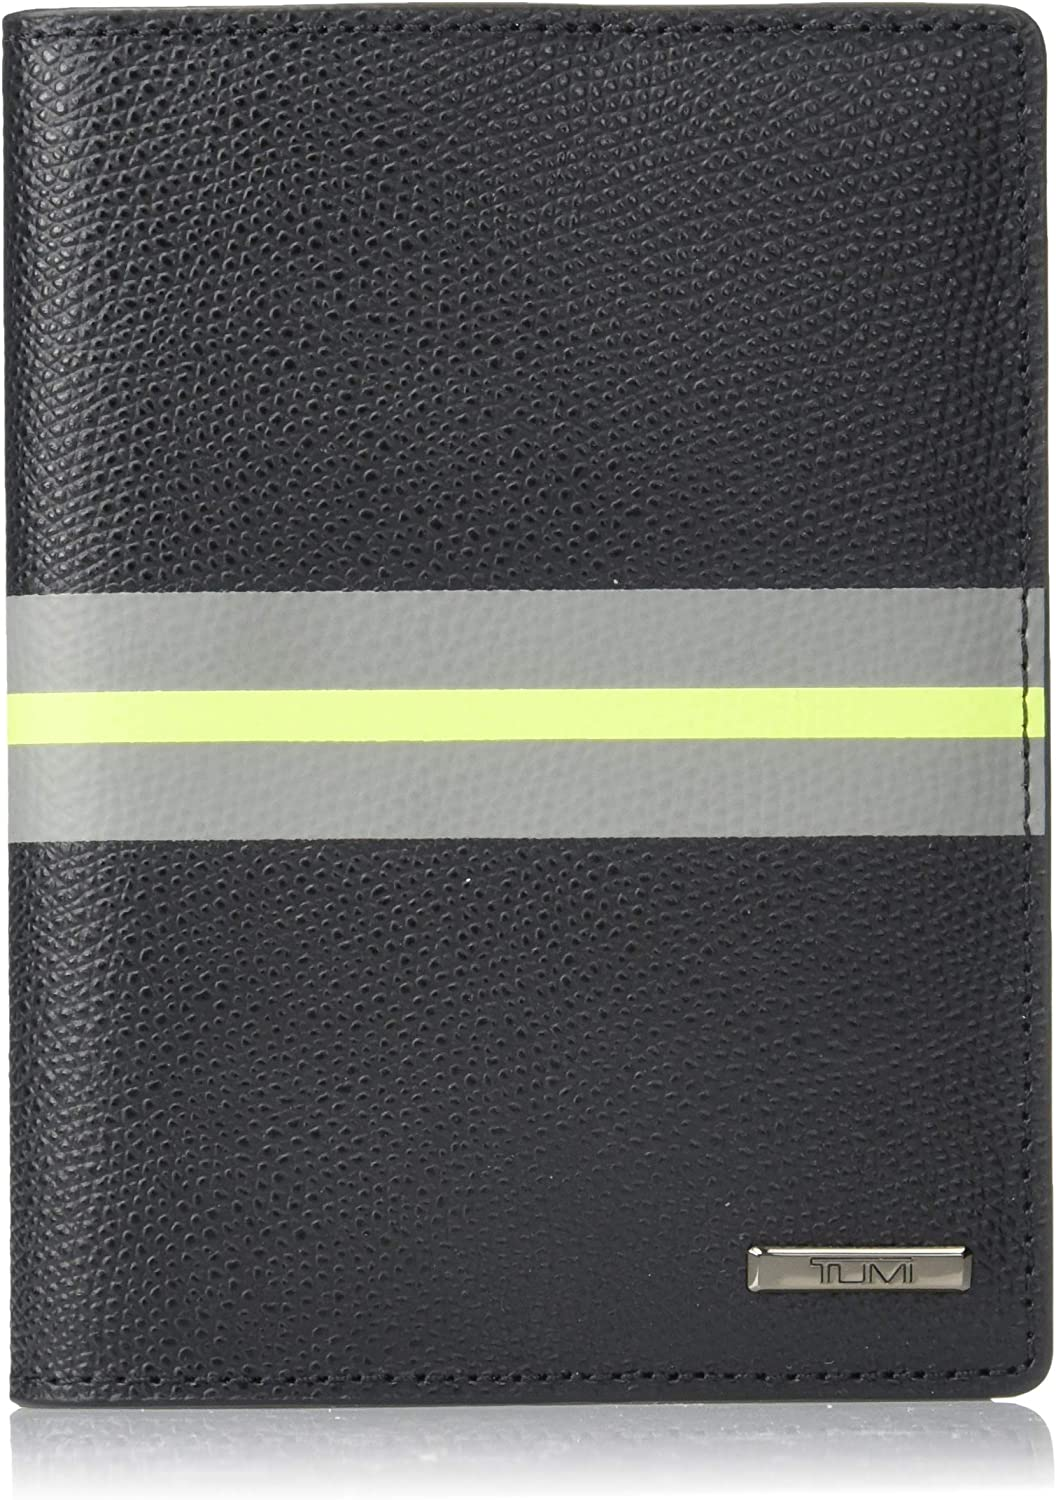 | TUMI - Province Passport Cover Holder - Wallet for Men and Women - Black Stripe | Passport Covers